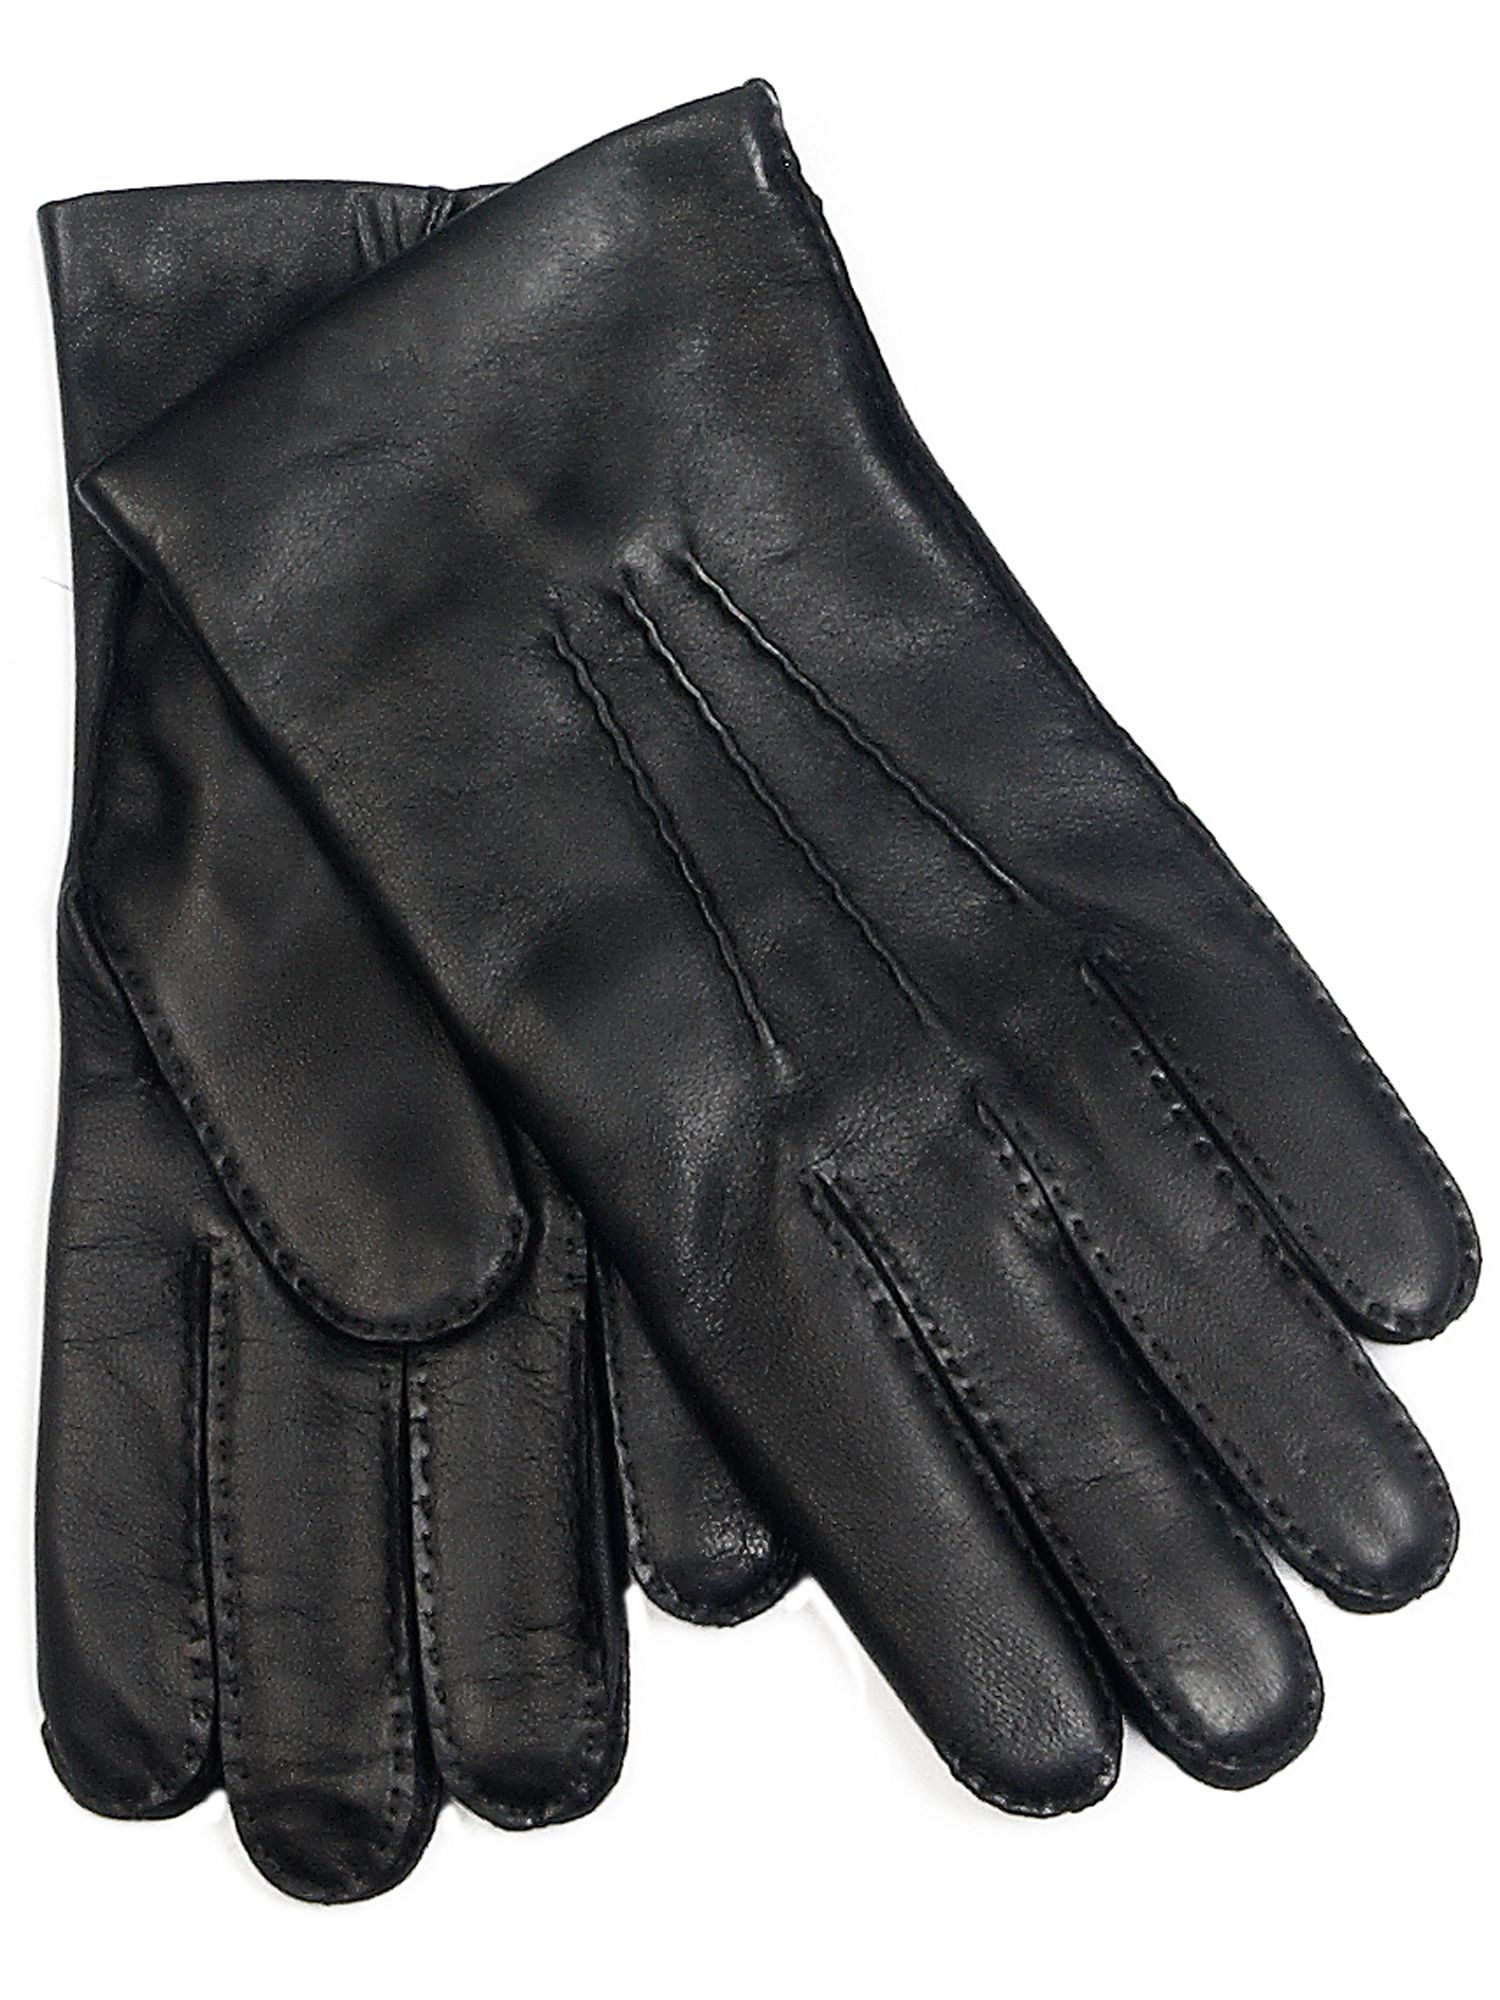 Dents Dents mens cashmere mix lined leather glove $45.00 AT vintagedancer.com